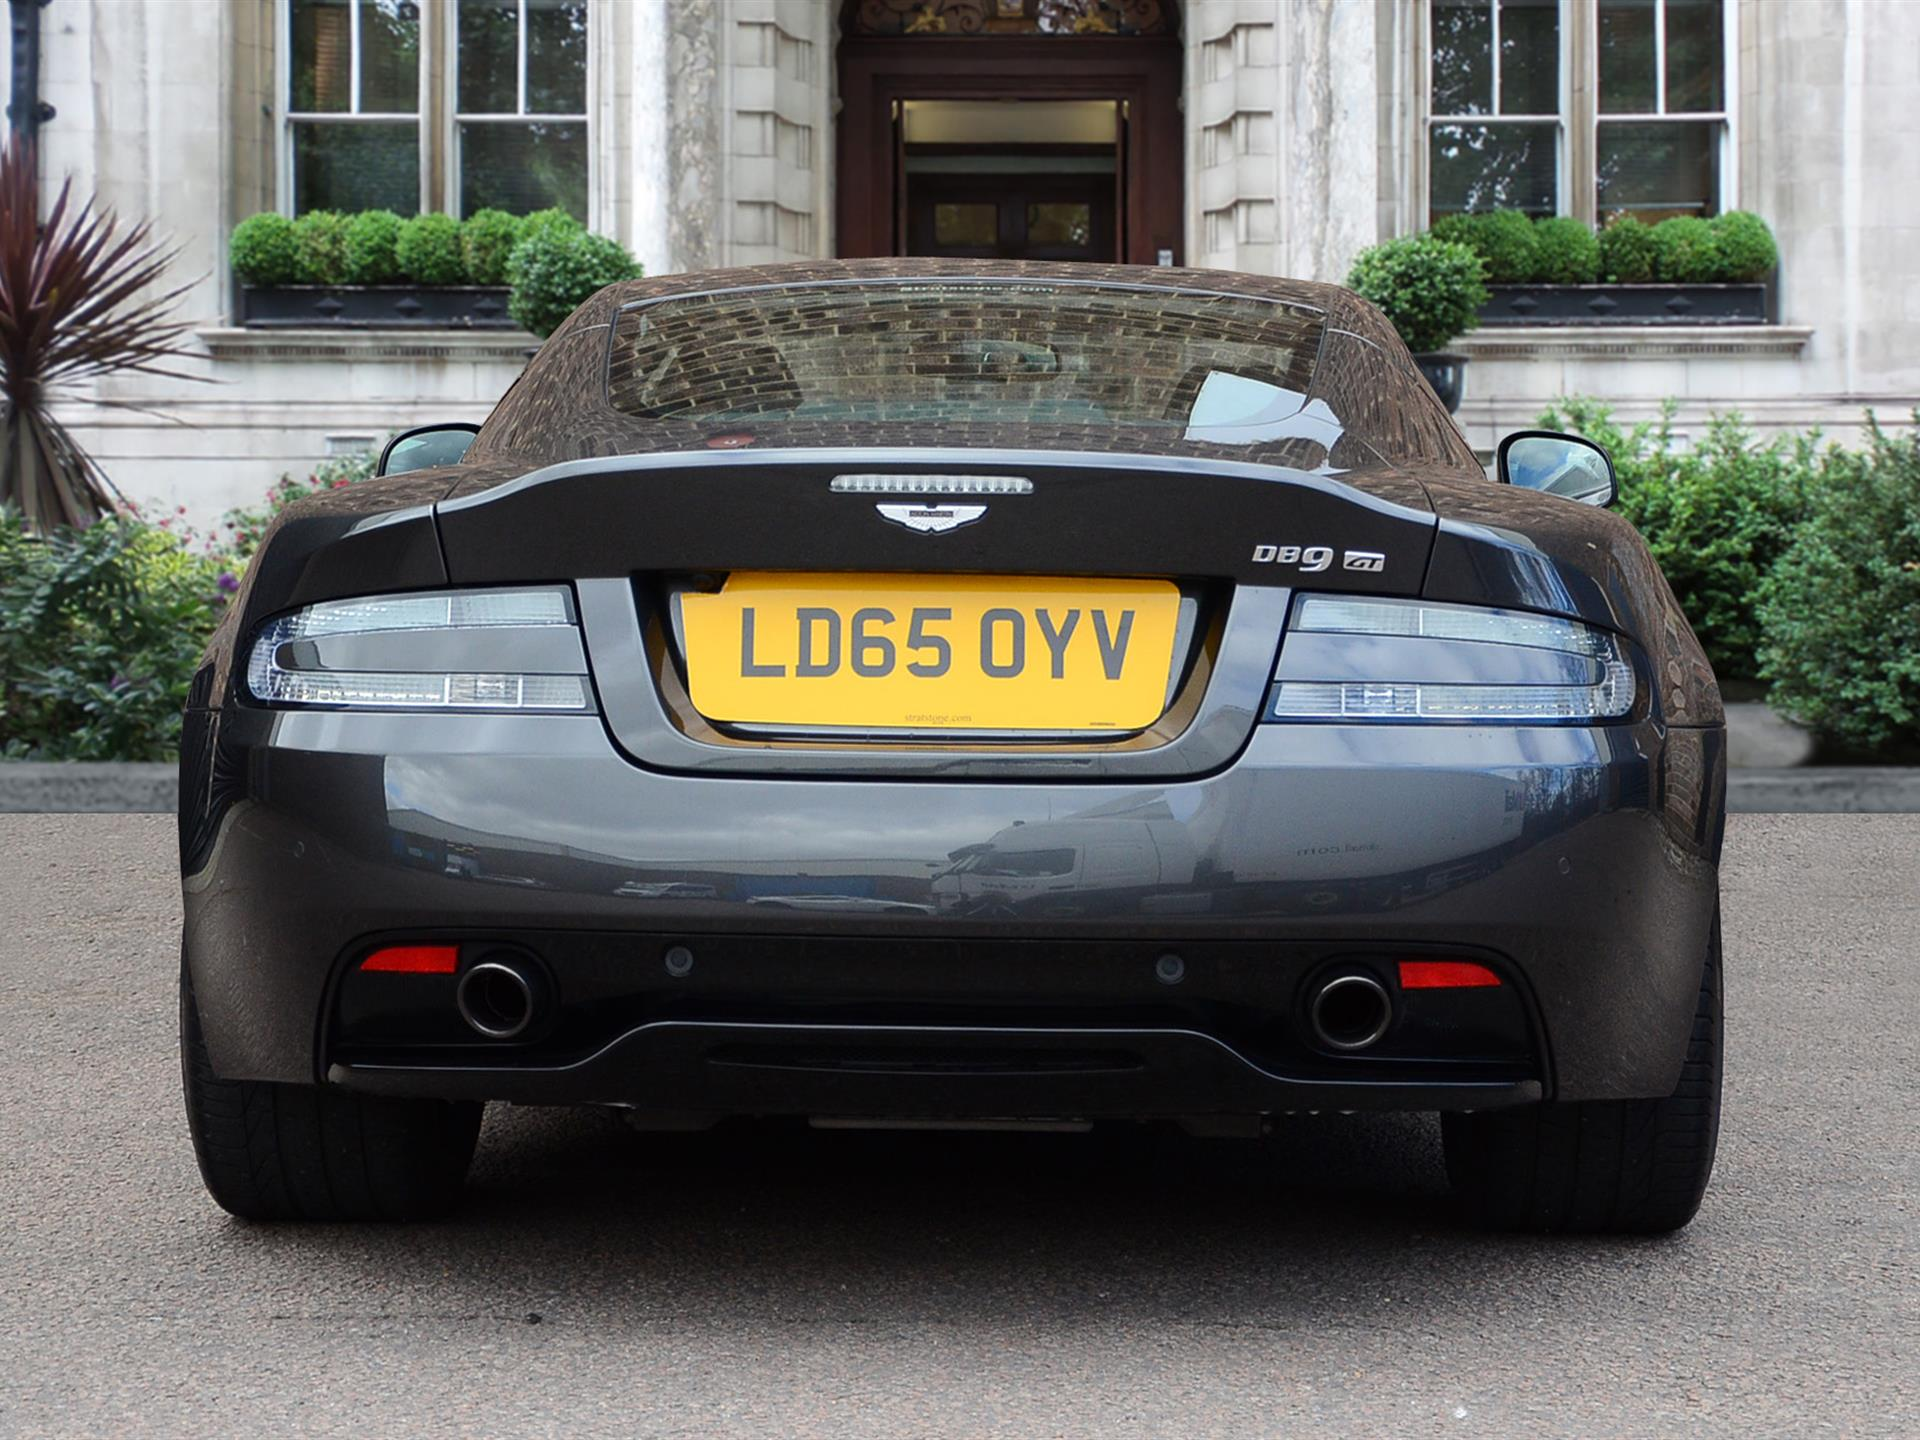 Aston Martin Lagonda Pre Owned & Used Aston Martins Car Details